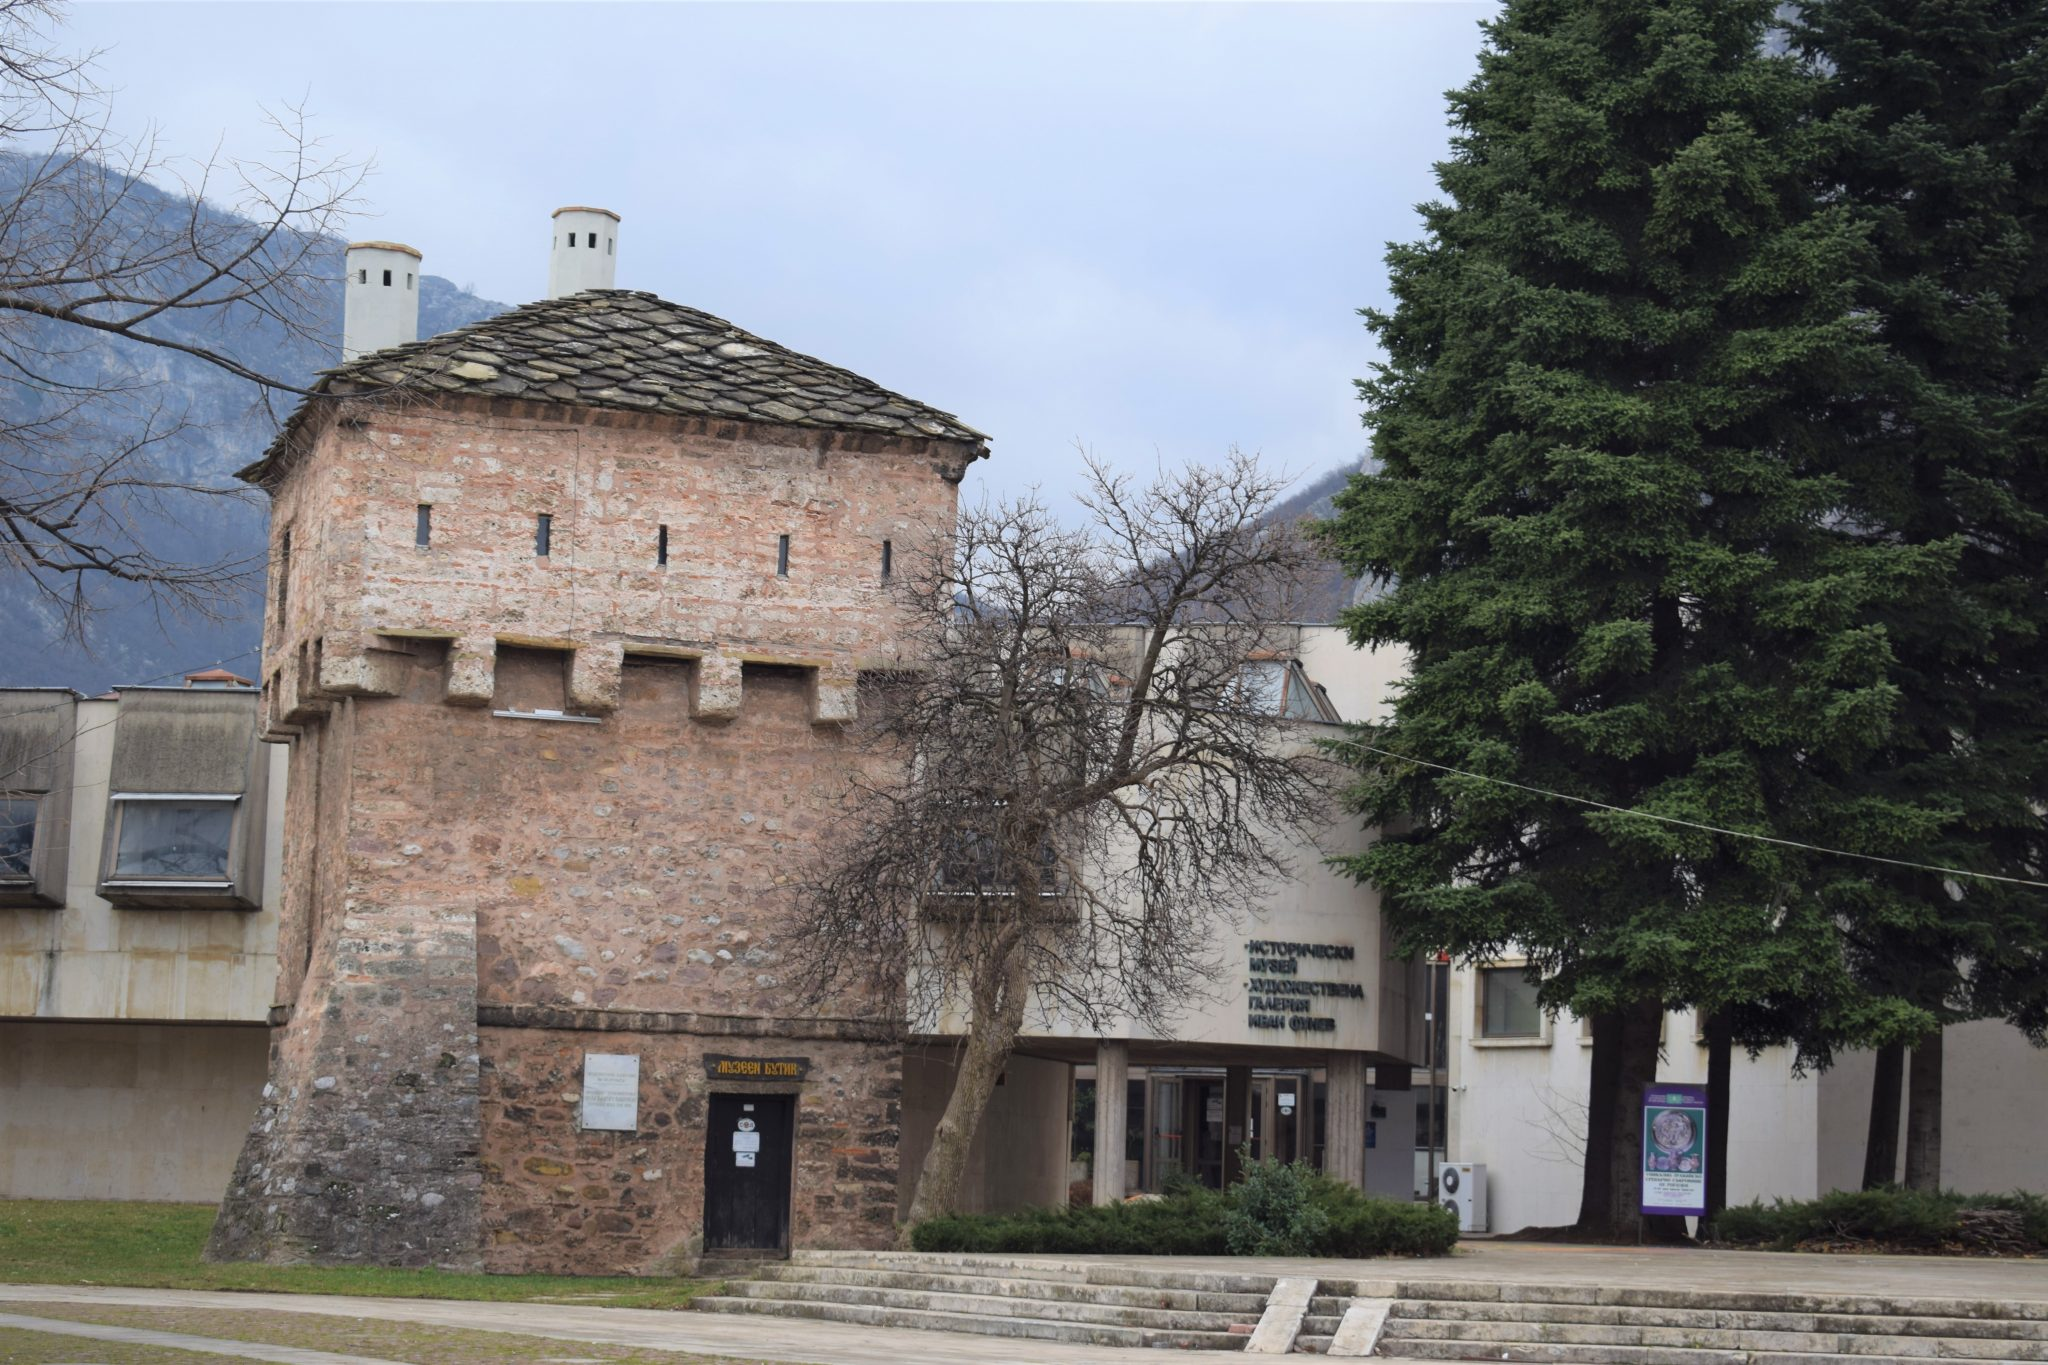 The Kurt Pasha Tower